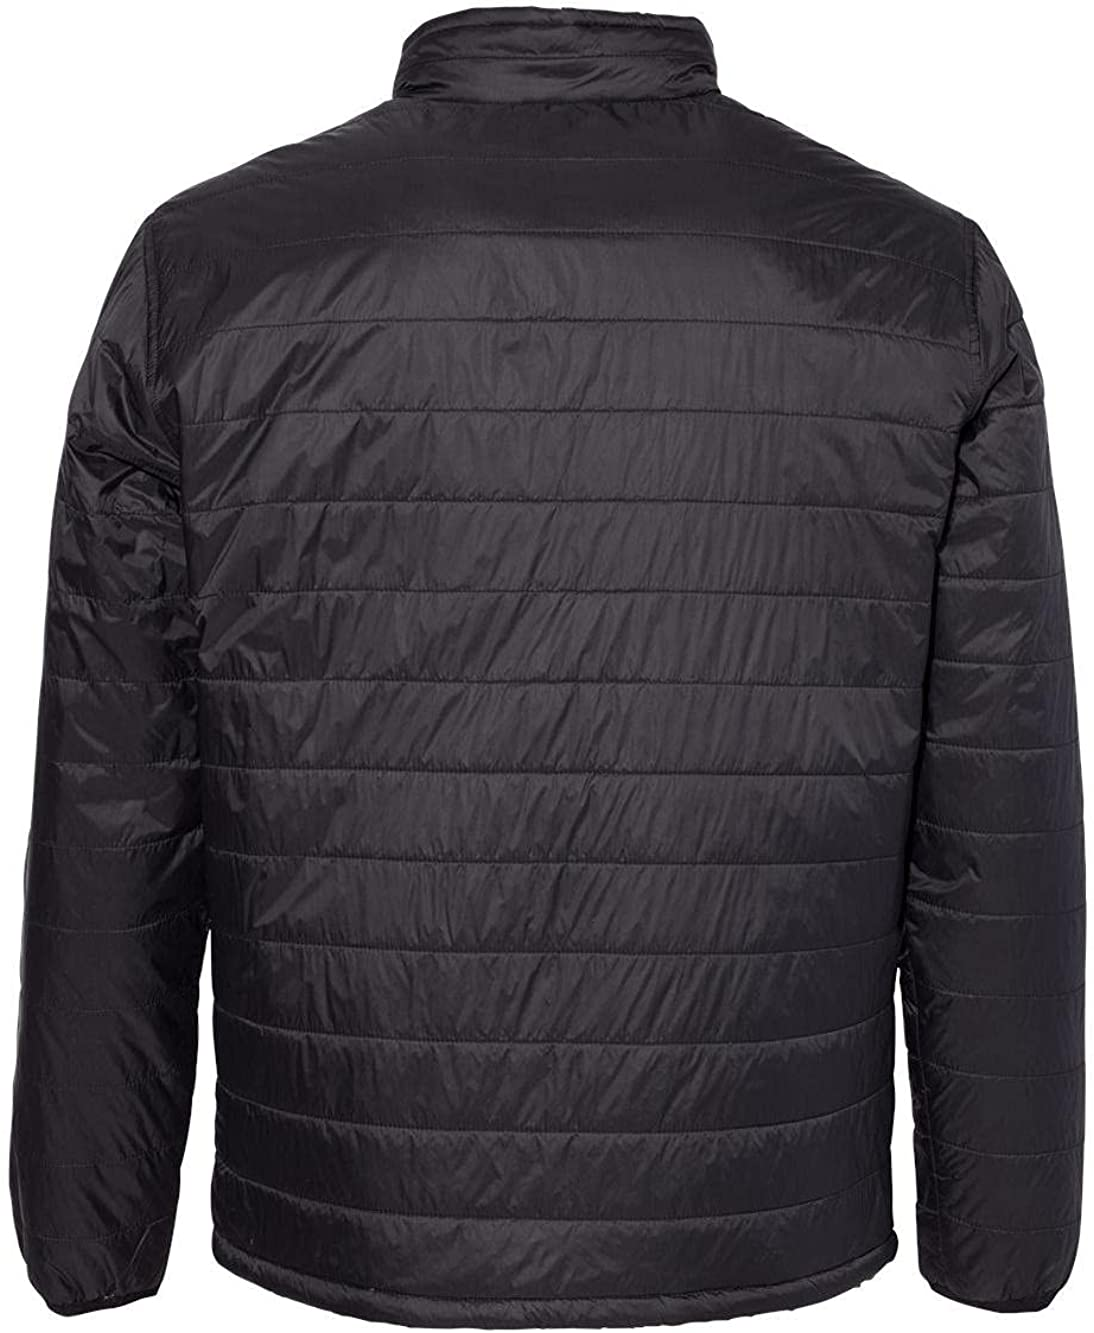 Independent Trading Co. - Puffer Jacket - EXP100PFZ